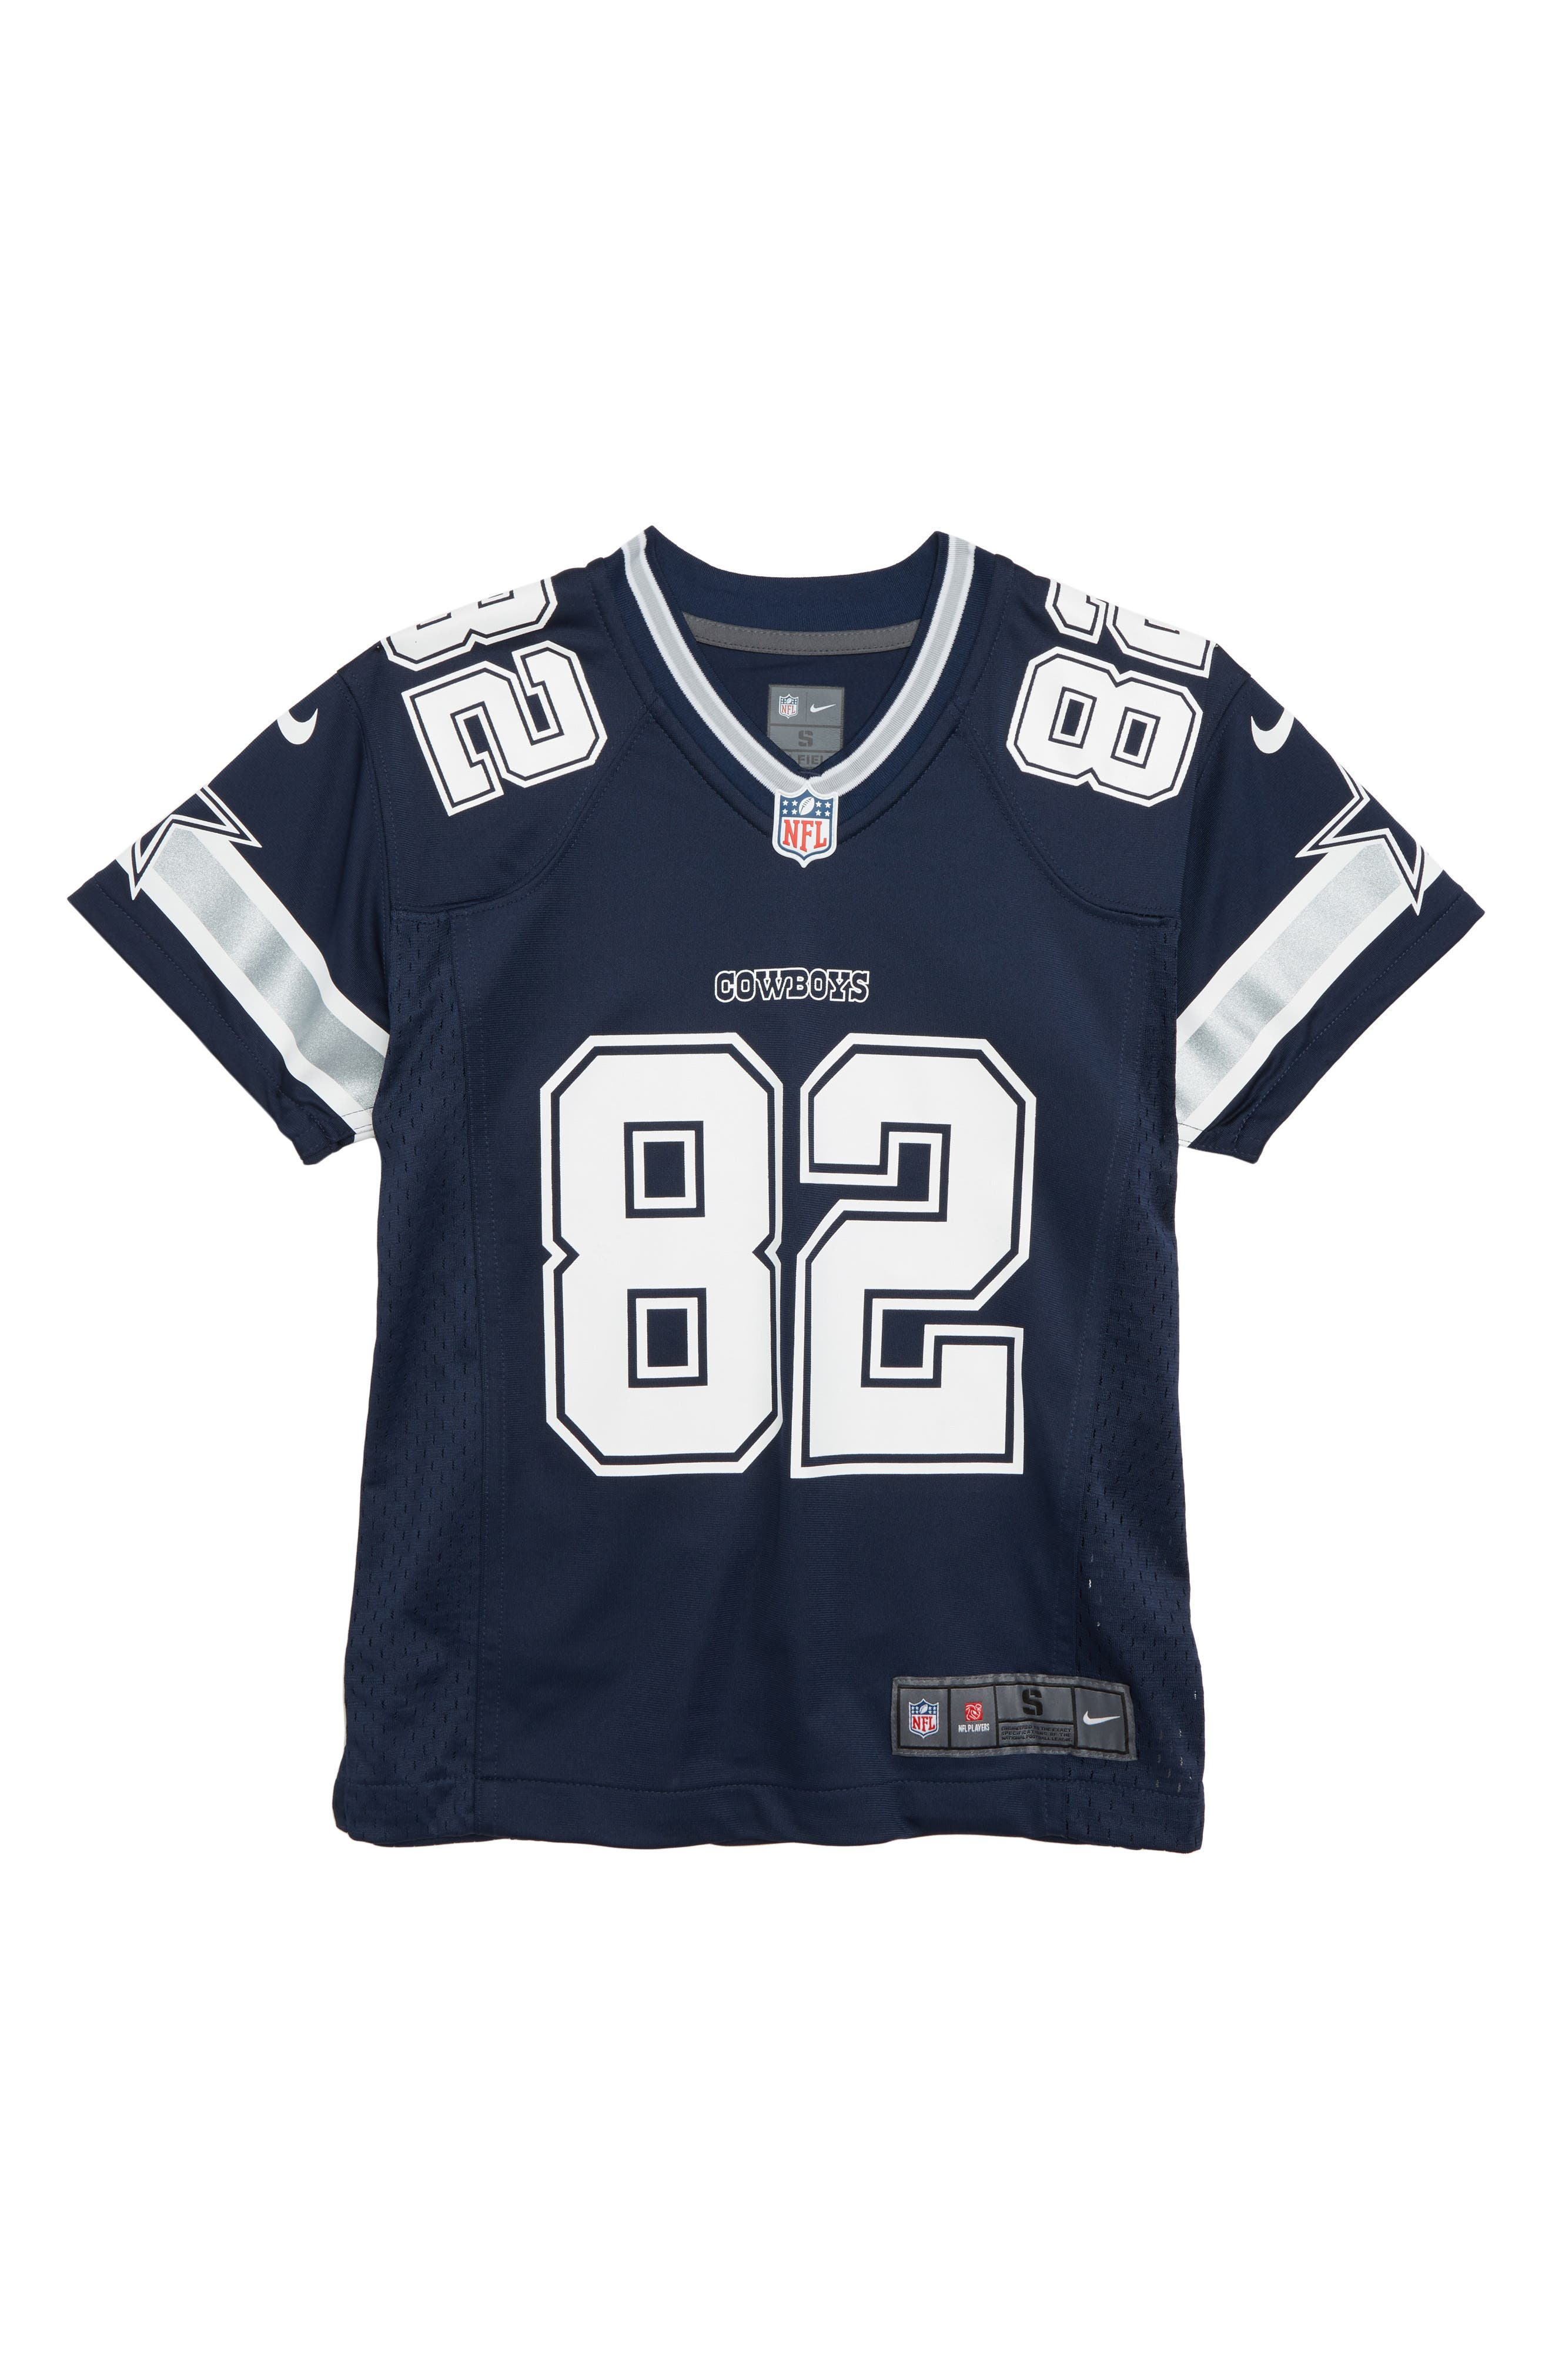 DALLAS COWBOYS Nike NFL Dallas Cowboys - Jason Witten Jersey, Main, color, 410